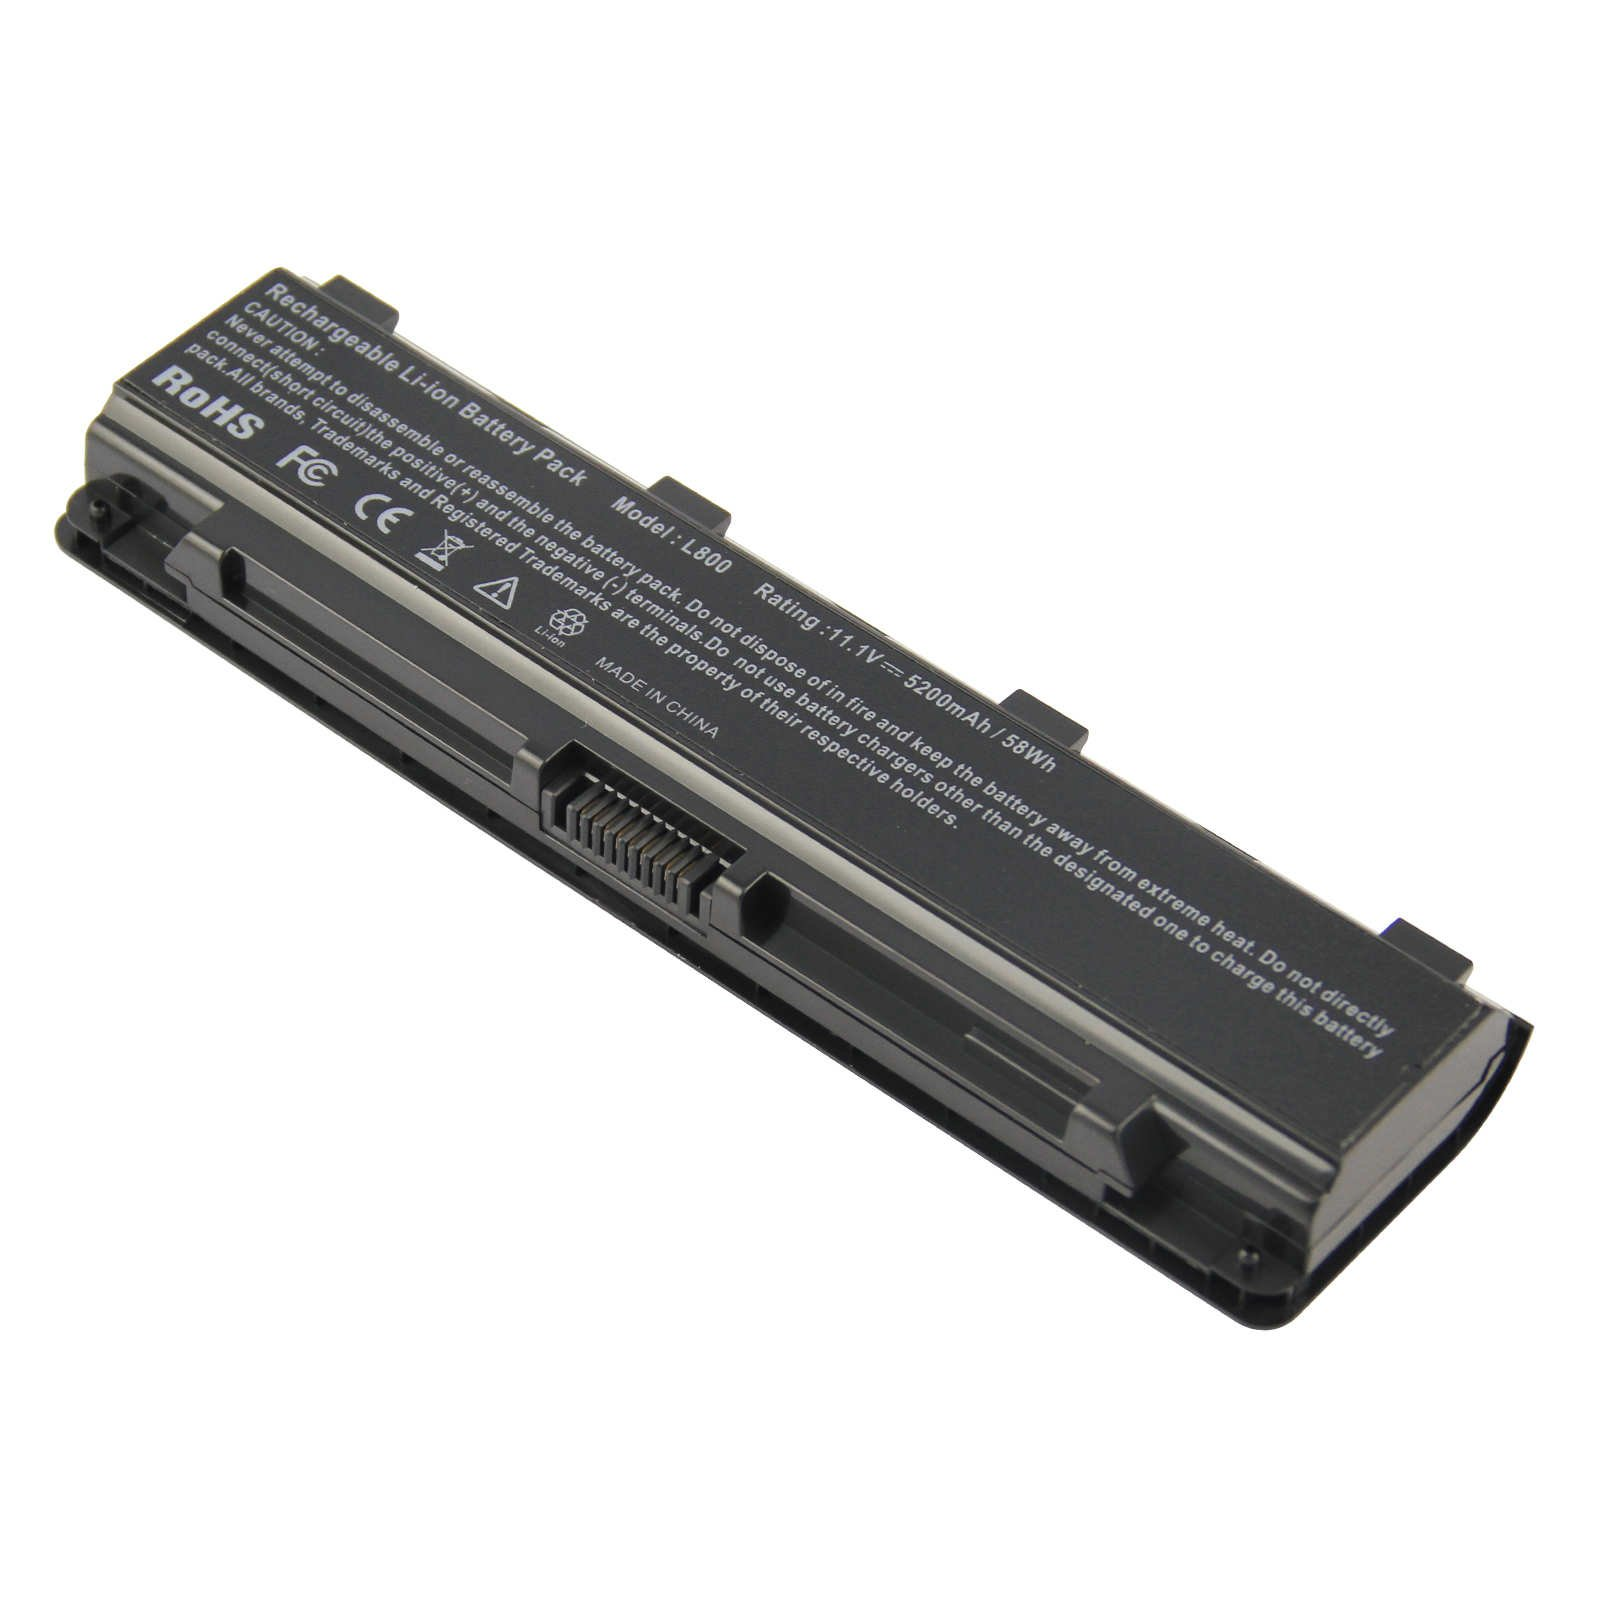 Bateria Pa5109u-1brs.for Toshiba C50-a C50d-a 5200mah 6 Cell